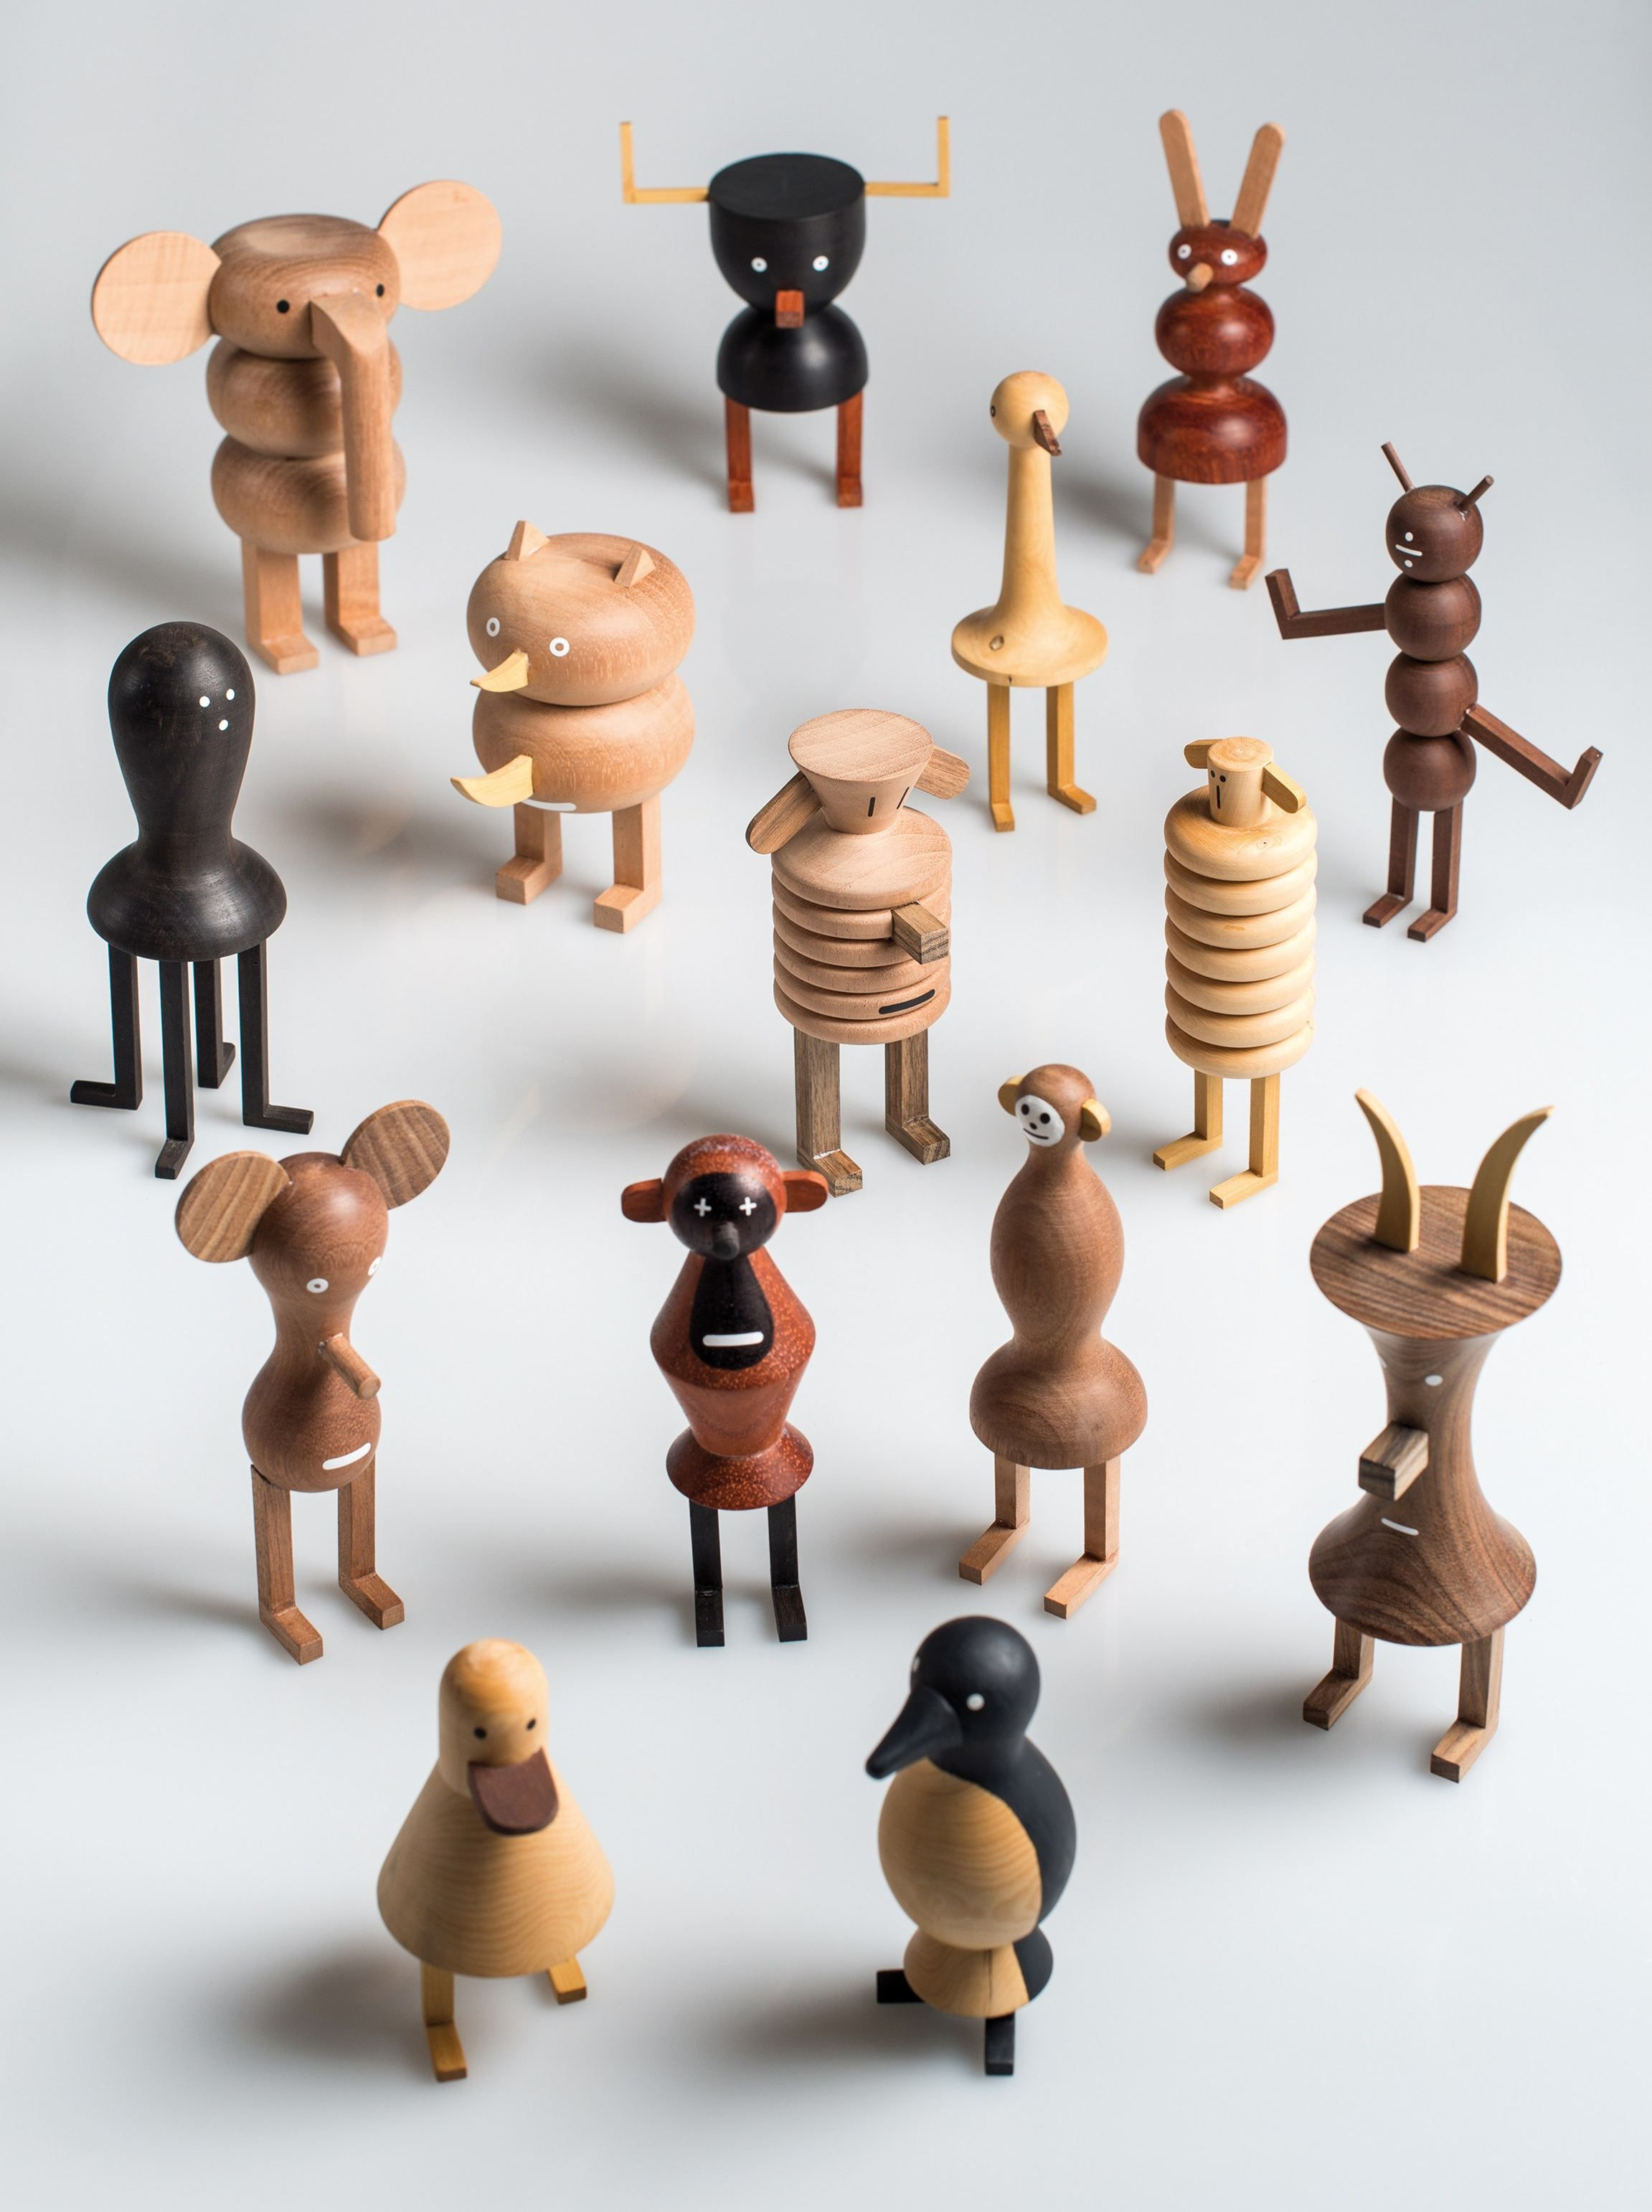 Wooden Sculpture Funny Farm By Lzf Design Isidro Ferrer Monster  # Muebles Hattori Design